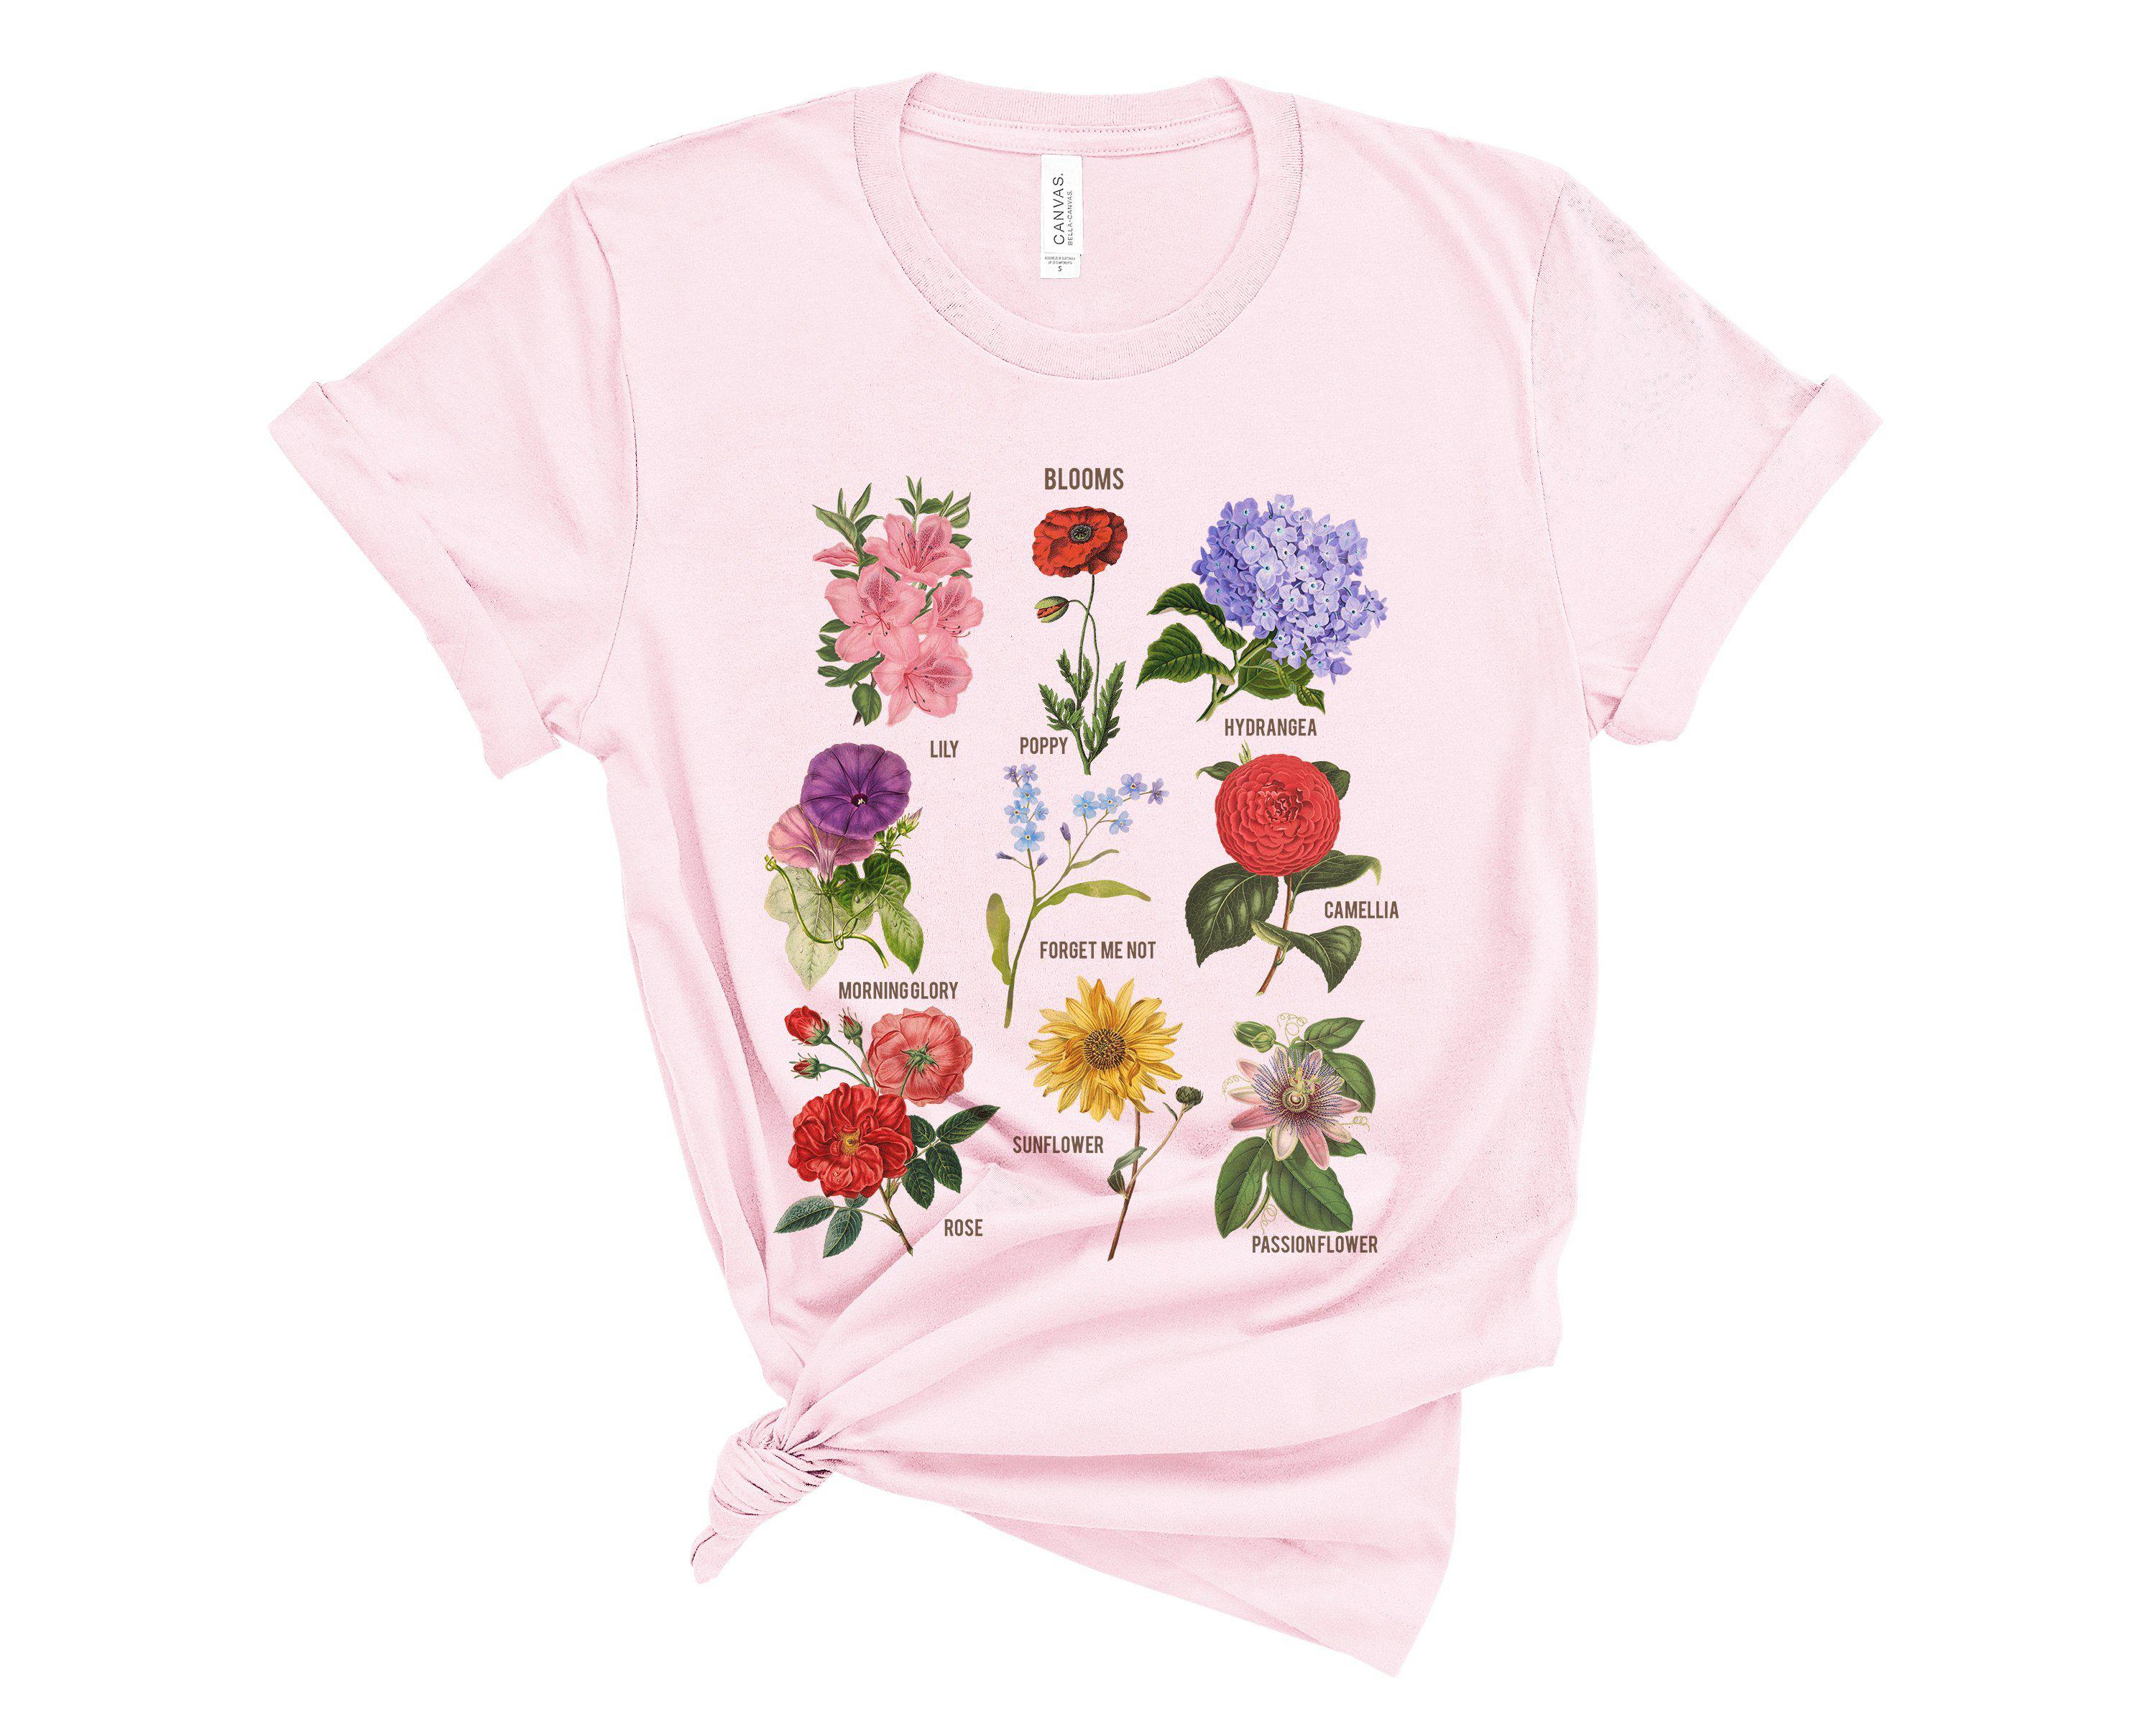 Blooms Botanical Flower Floral Chart Soft Bella Tee Graphic T-Shirt Tee BOXELS